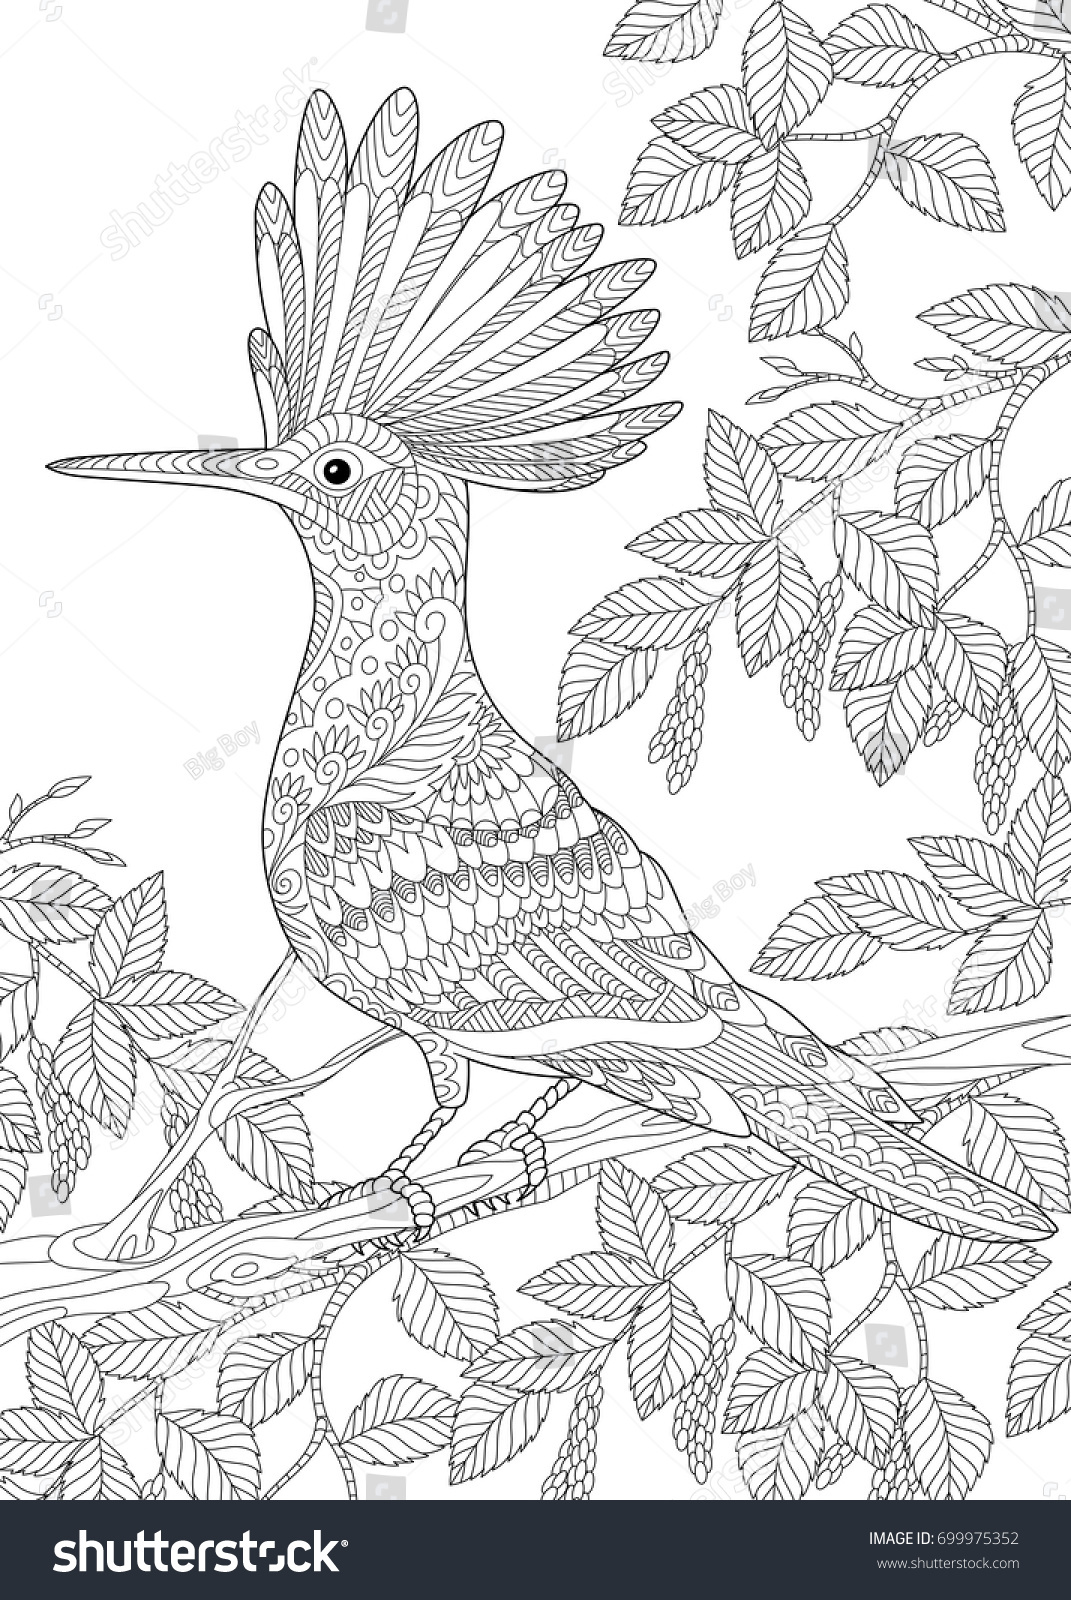 coloring page of hoopoe bird upupa epops sitting on birch tree branch freehand - Birch Tree Branches Coloring Pages